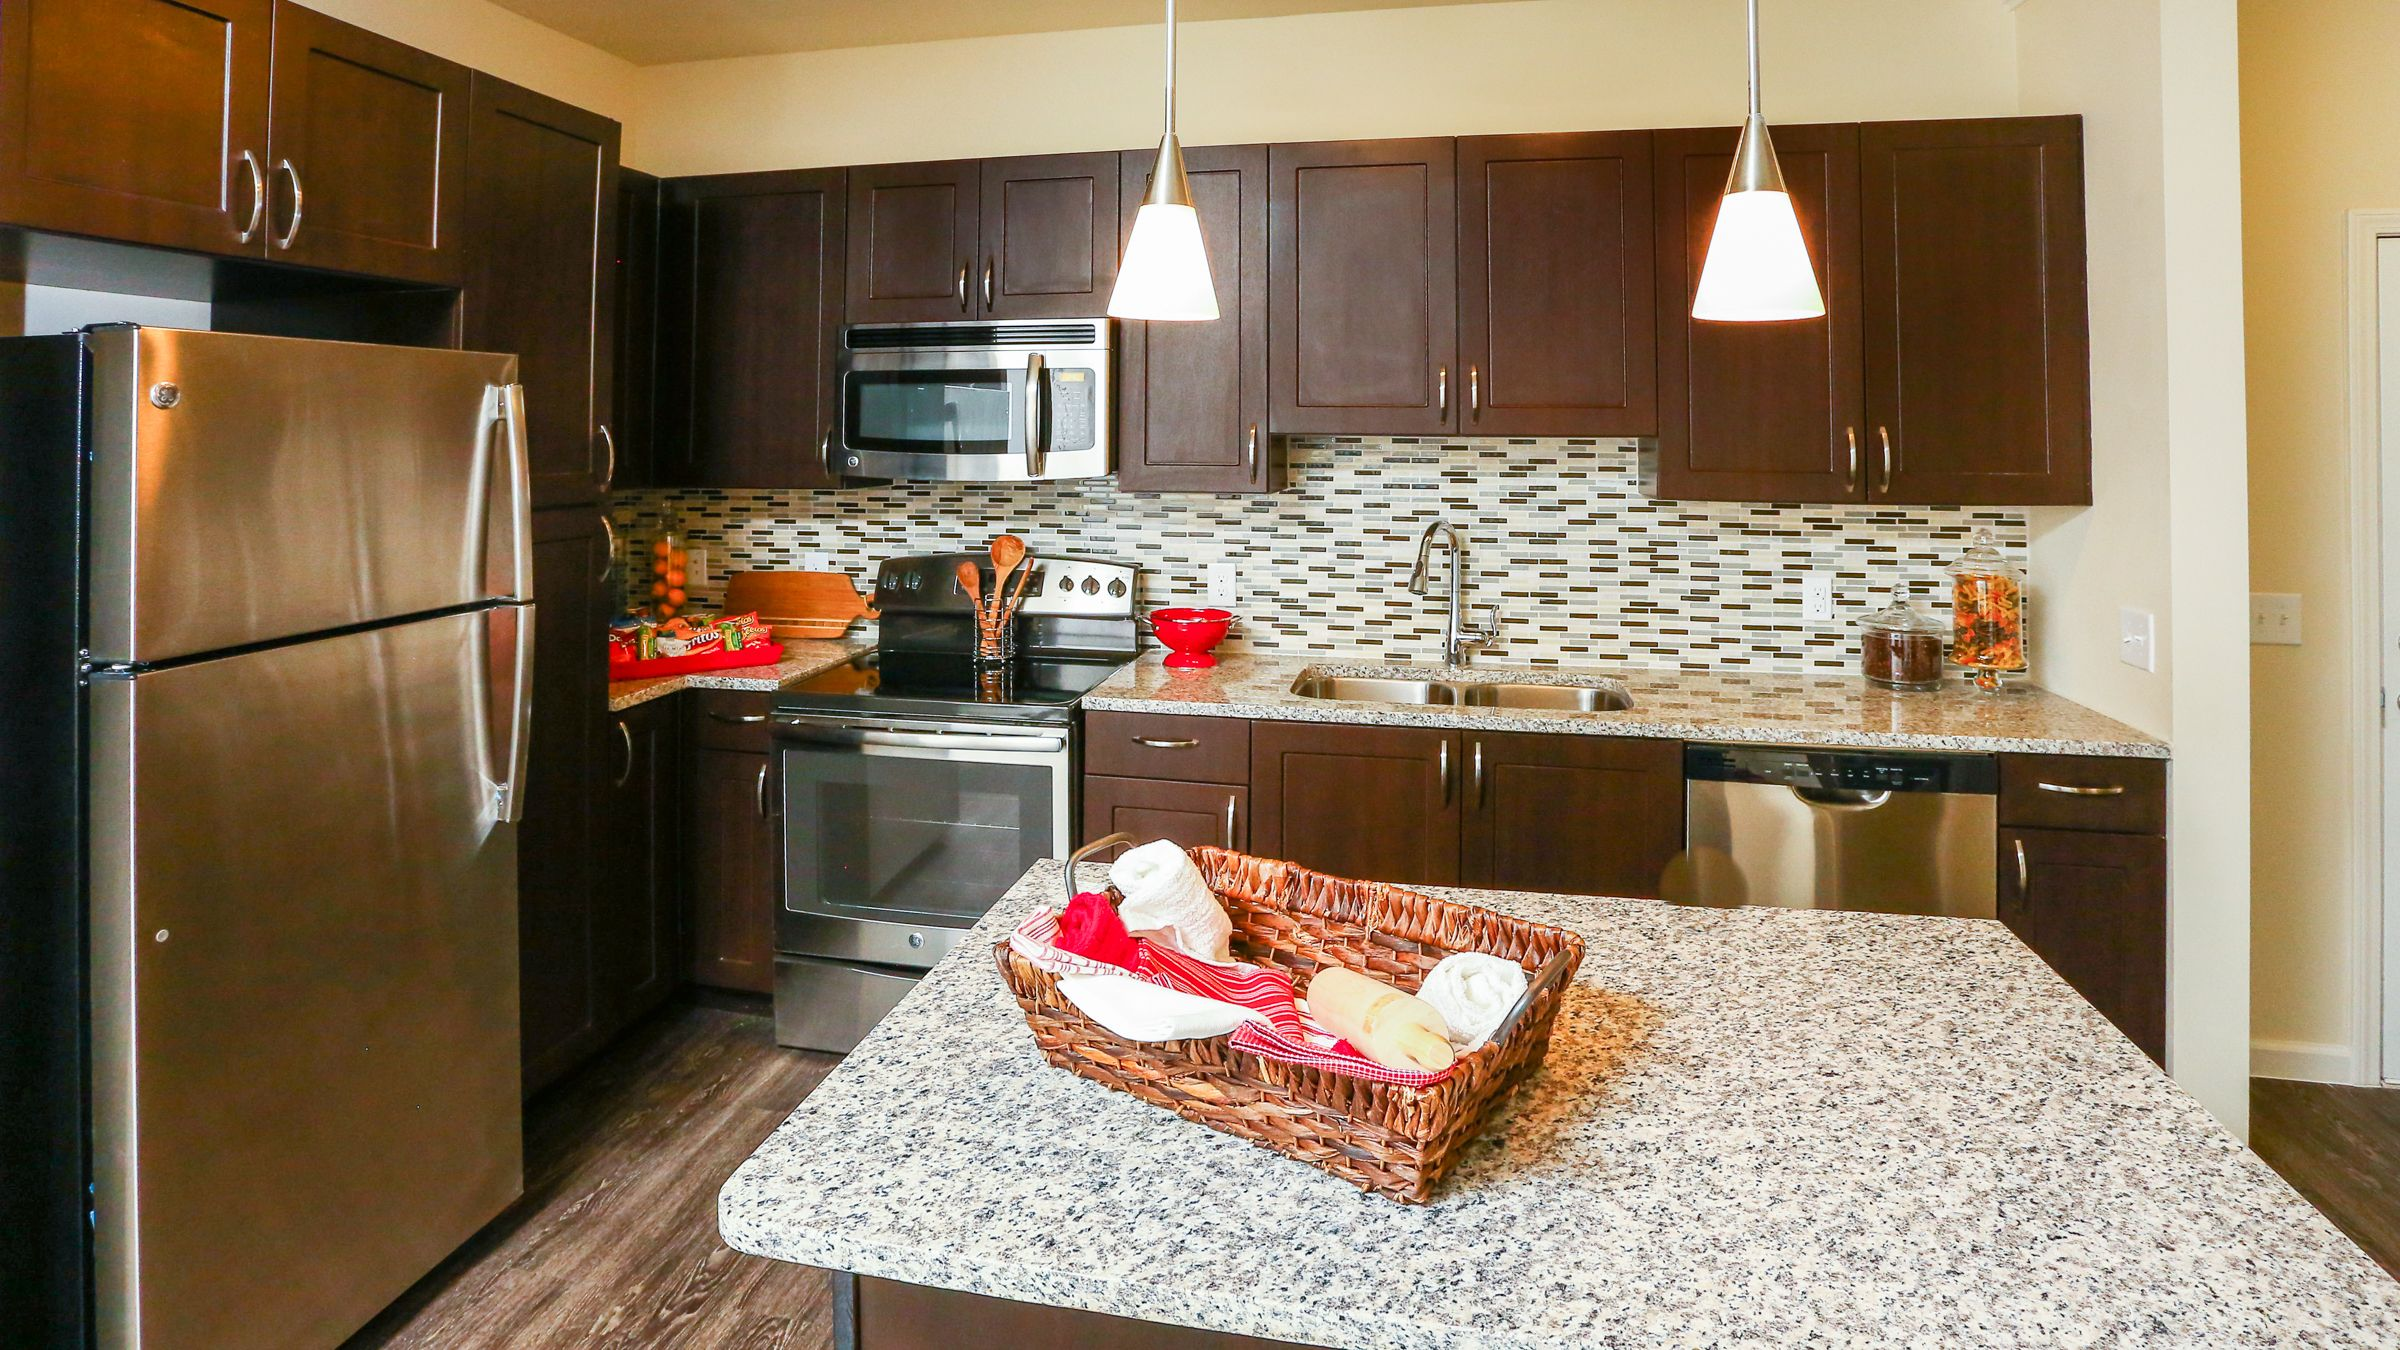 Jacksonville Fl · Granite Counter Tops And Hardwood Floors In The Kitchen  At The Views At Harbortown Apartments In